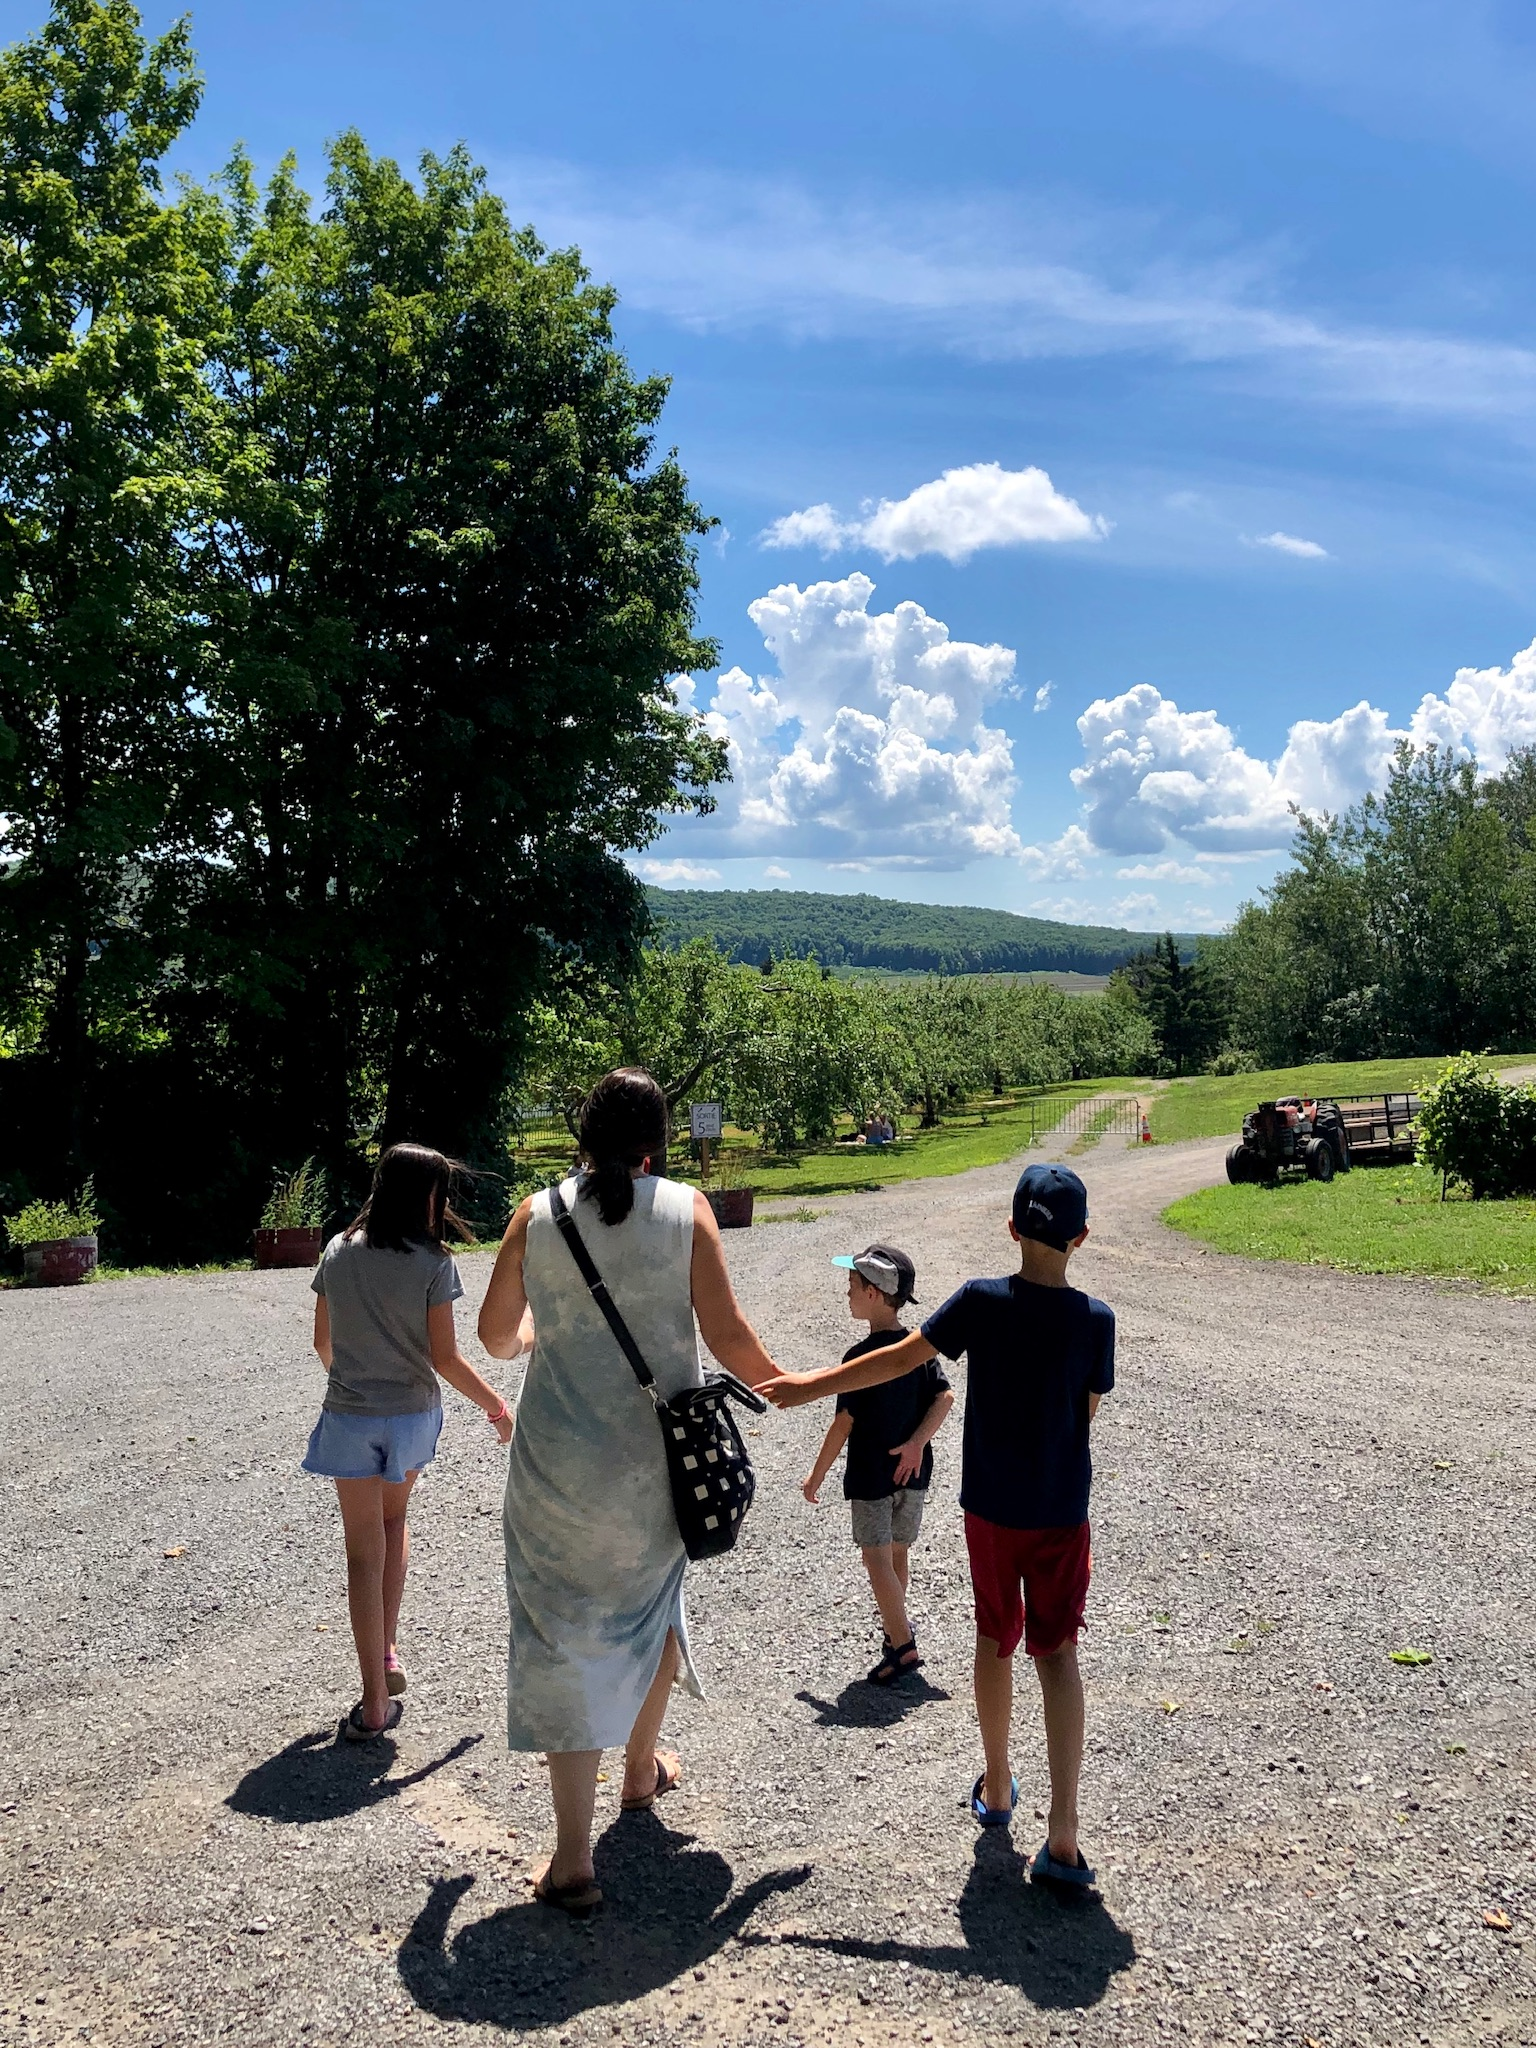 Winery near Montreal: An Unexpected Picnic Destination